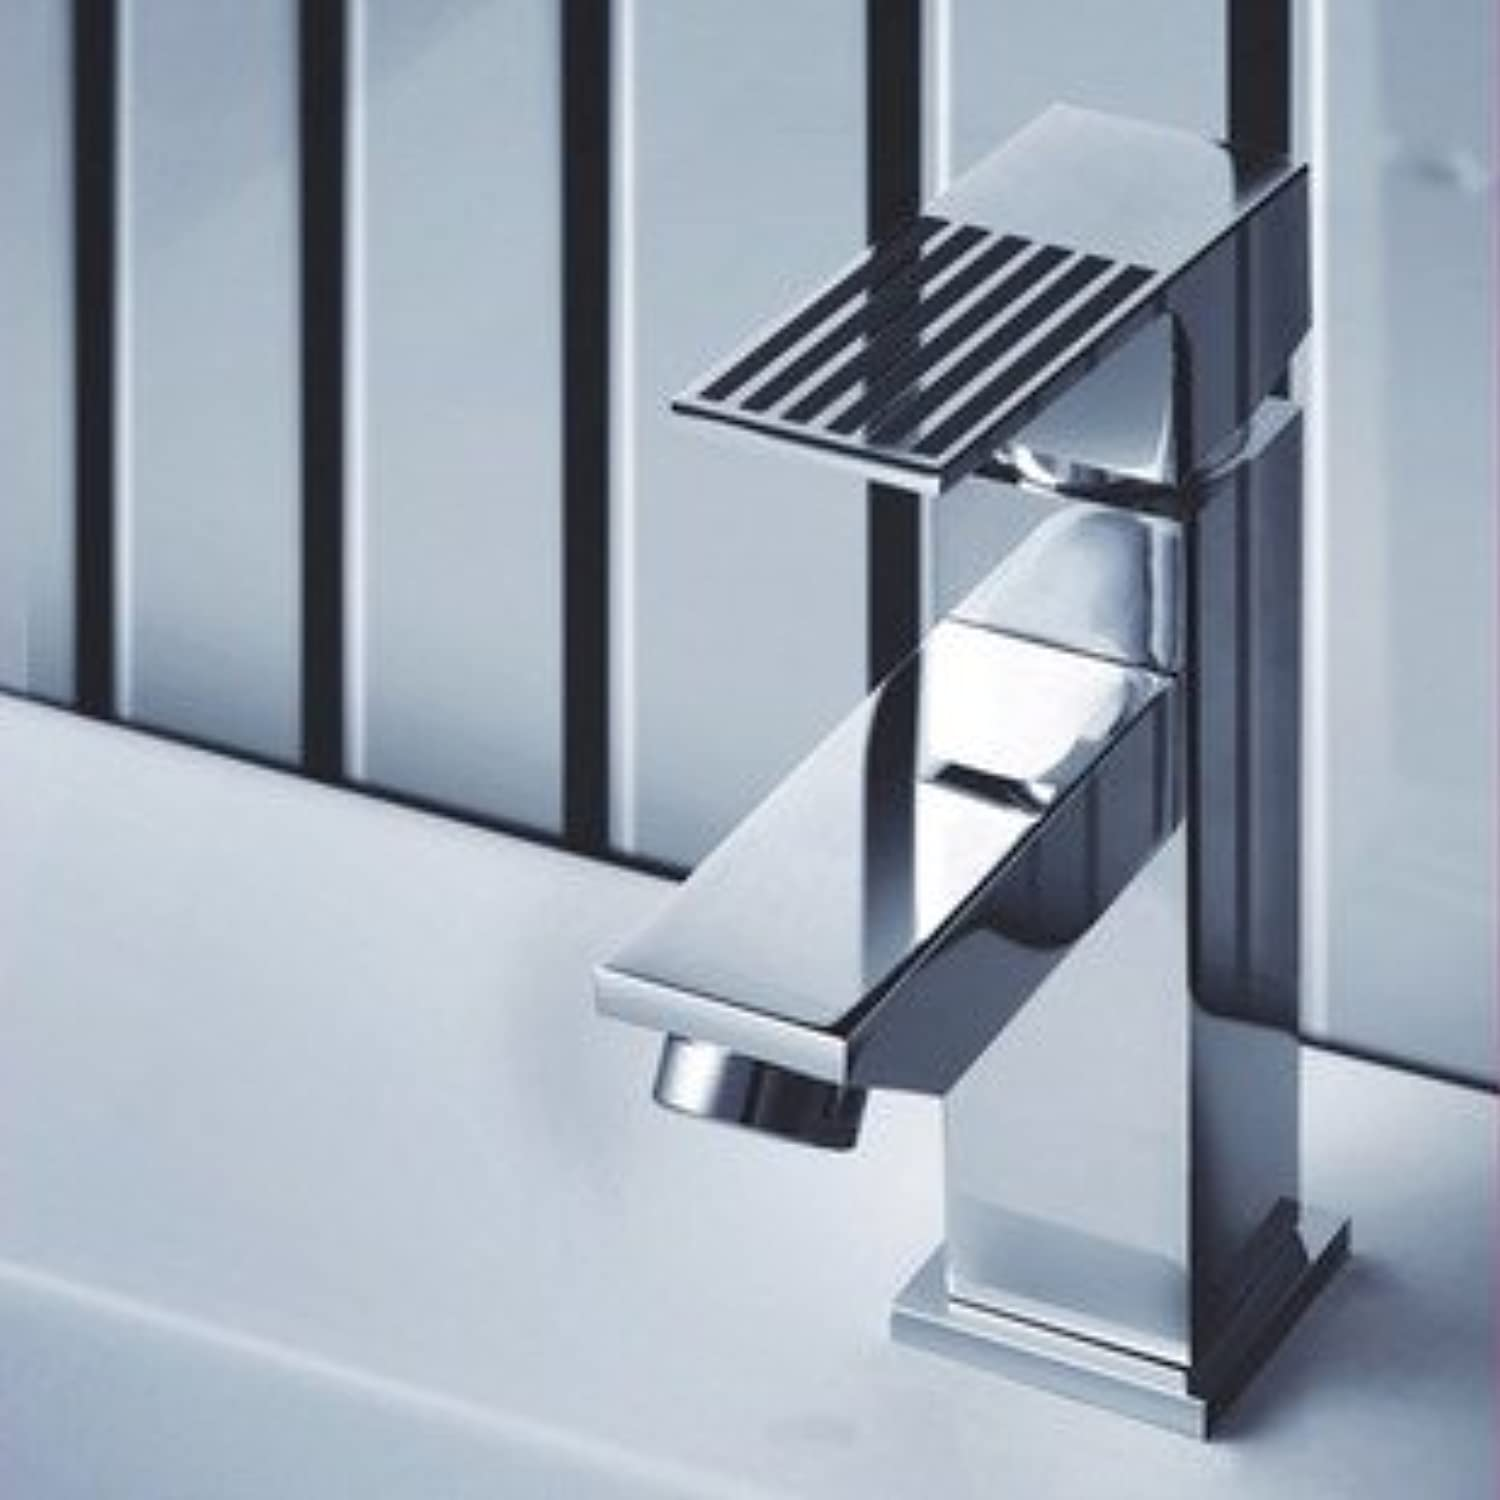 New Square Drawing Hot and Cold Single Hole Basin Faucet